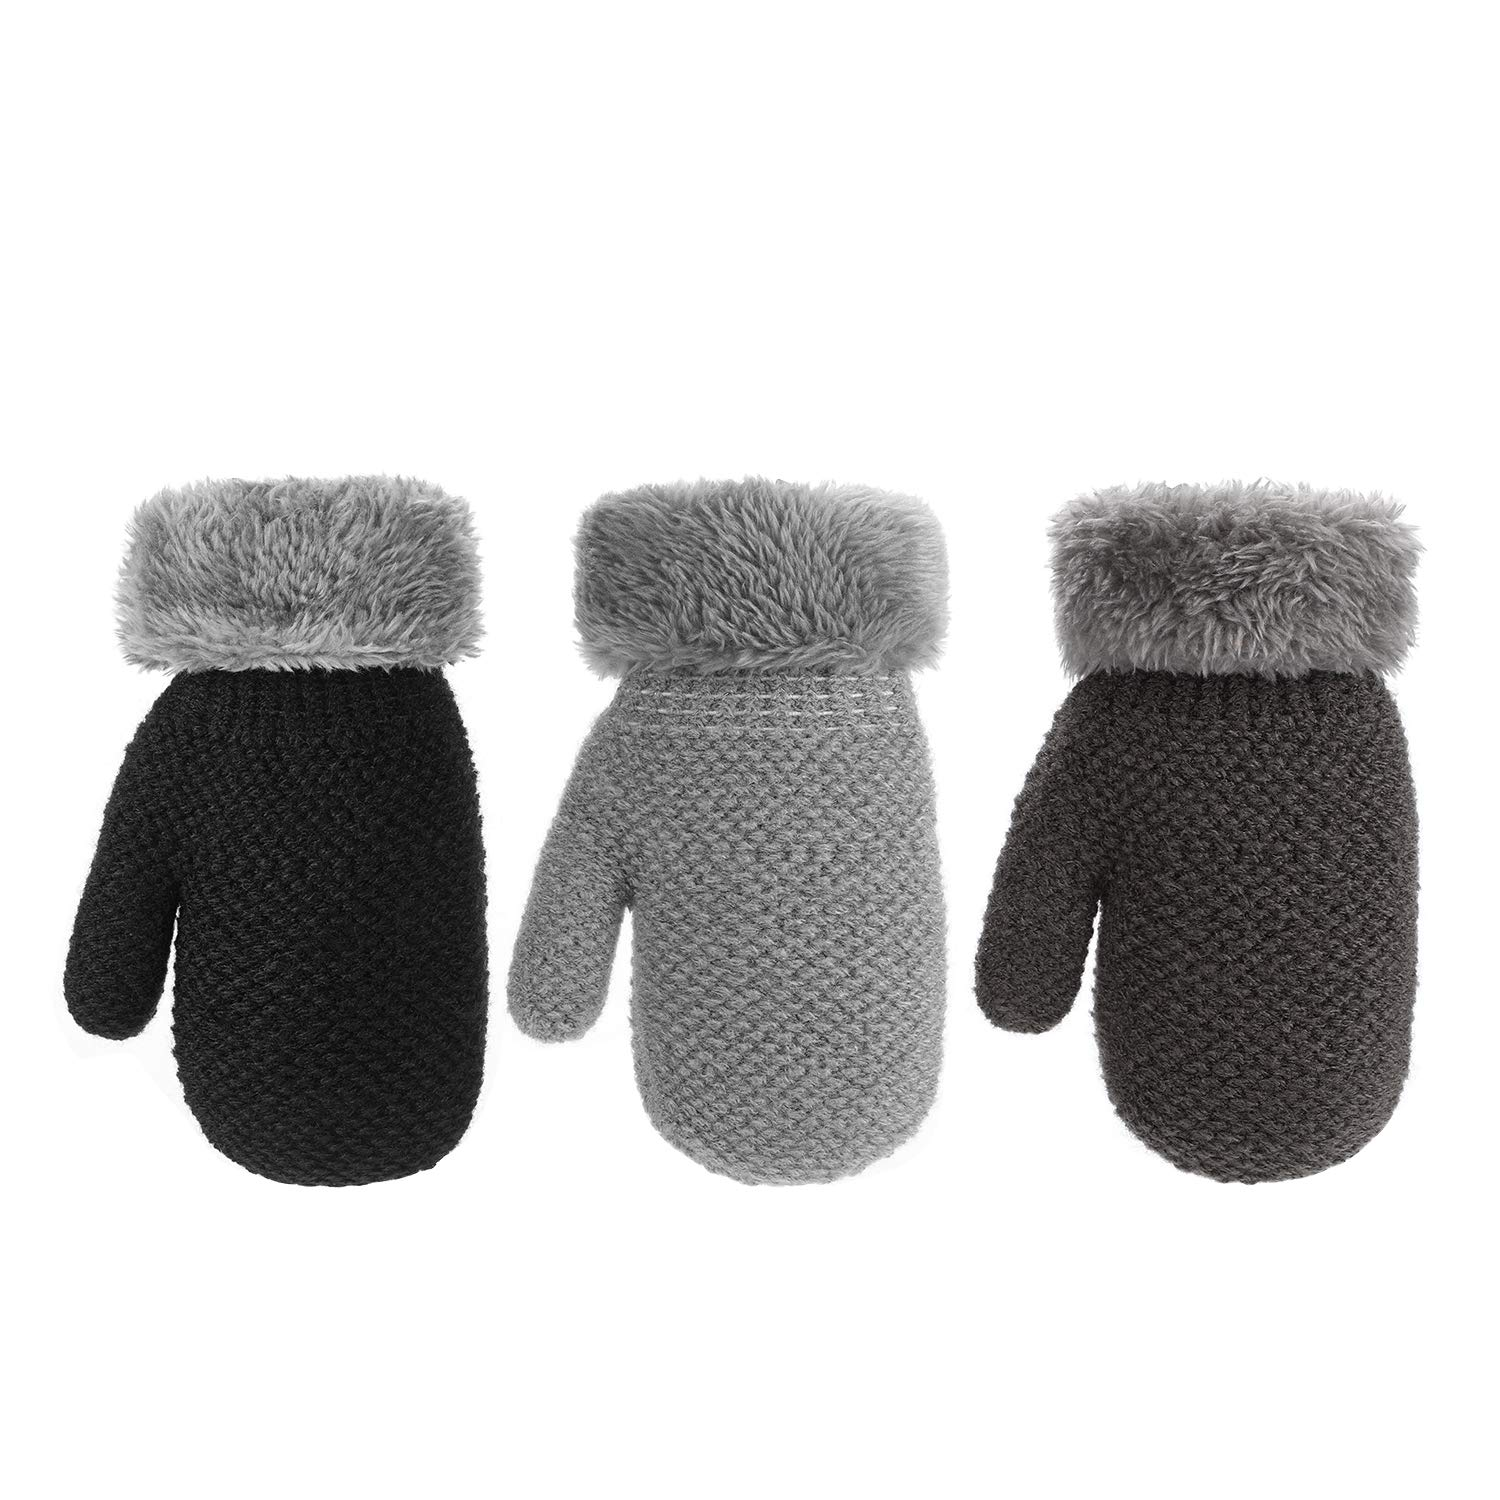 AYPOW Toddler Warm Gloves 3 Pairs Winter Kids Boys Girls Sherpa Lined Knitted Mittens